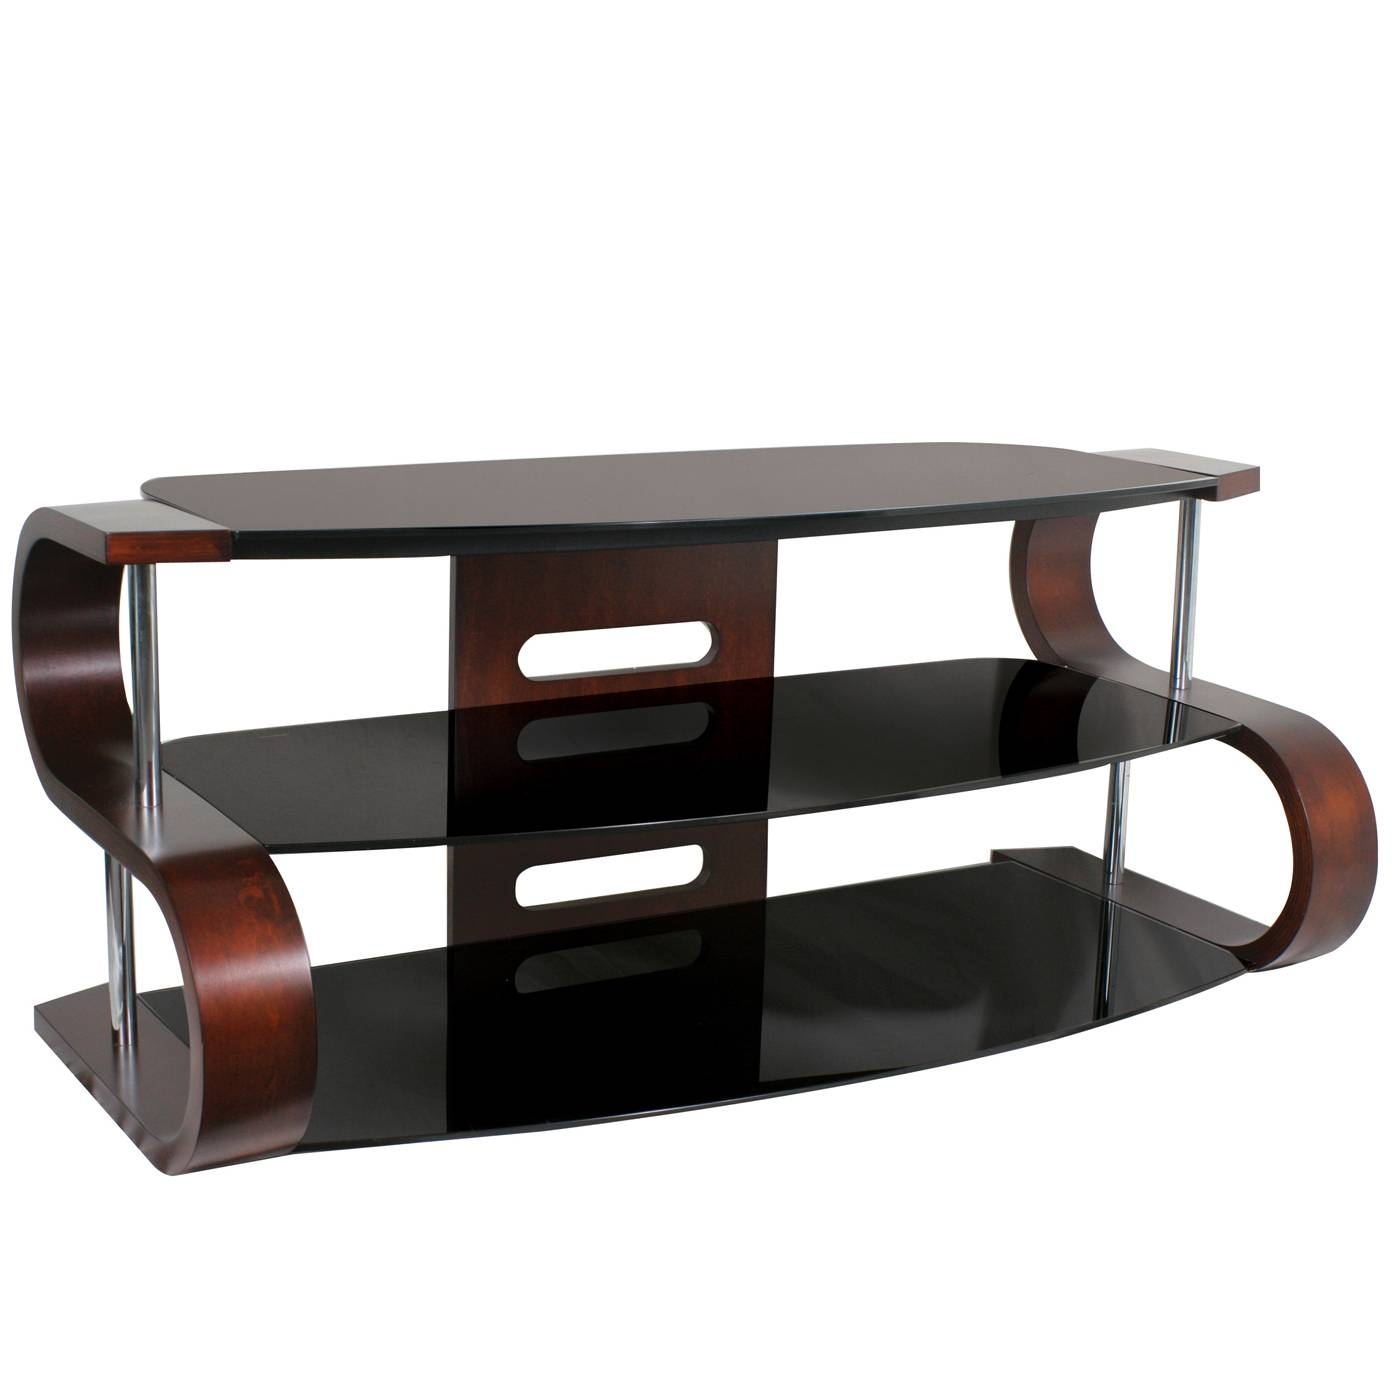 Lumisource Tv-Sw-Ts 120 Metro Series 120 Tv Stand | Lowe's Canada for Modern Glass Tv Stands (Image 4 of 15)